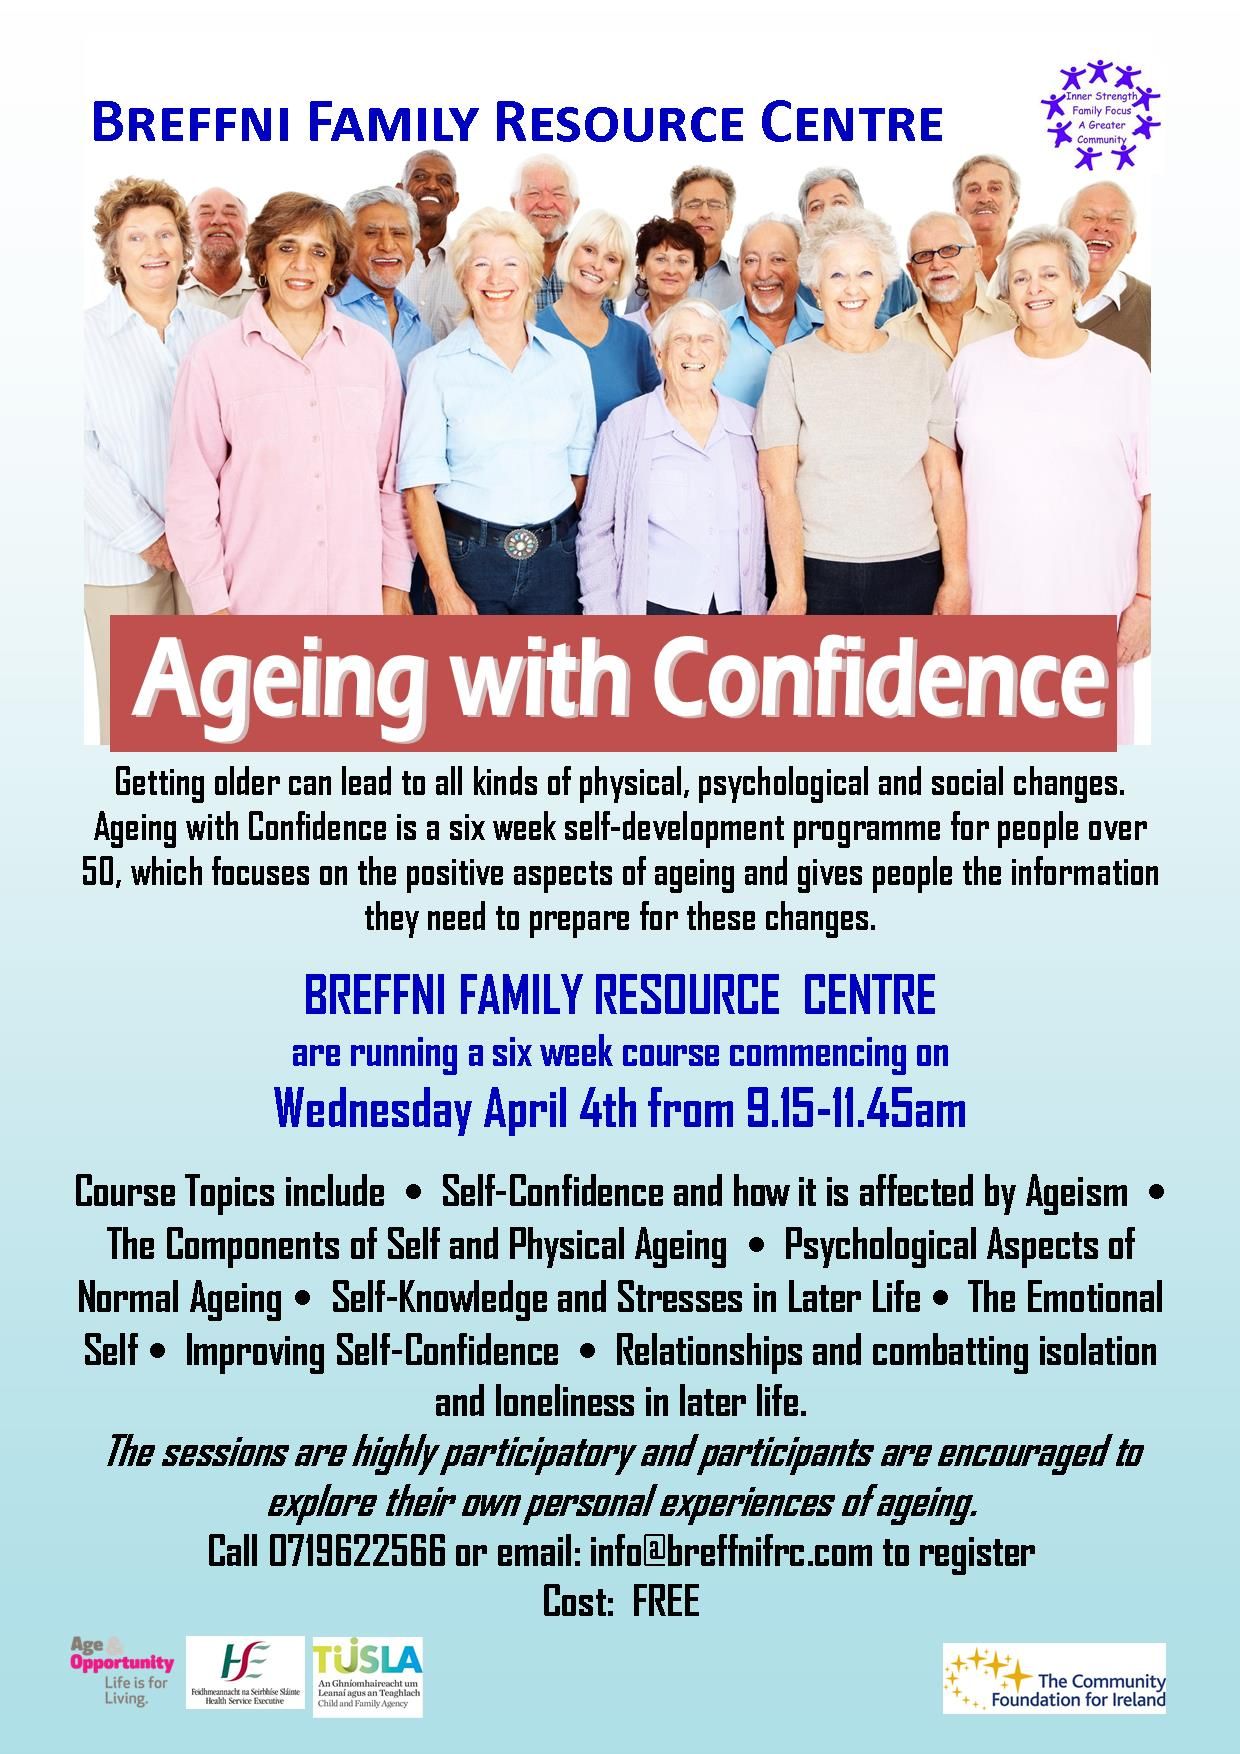 MyCarrick Event - Breffni Family Resource Centre - Ageing with Confidence